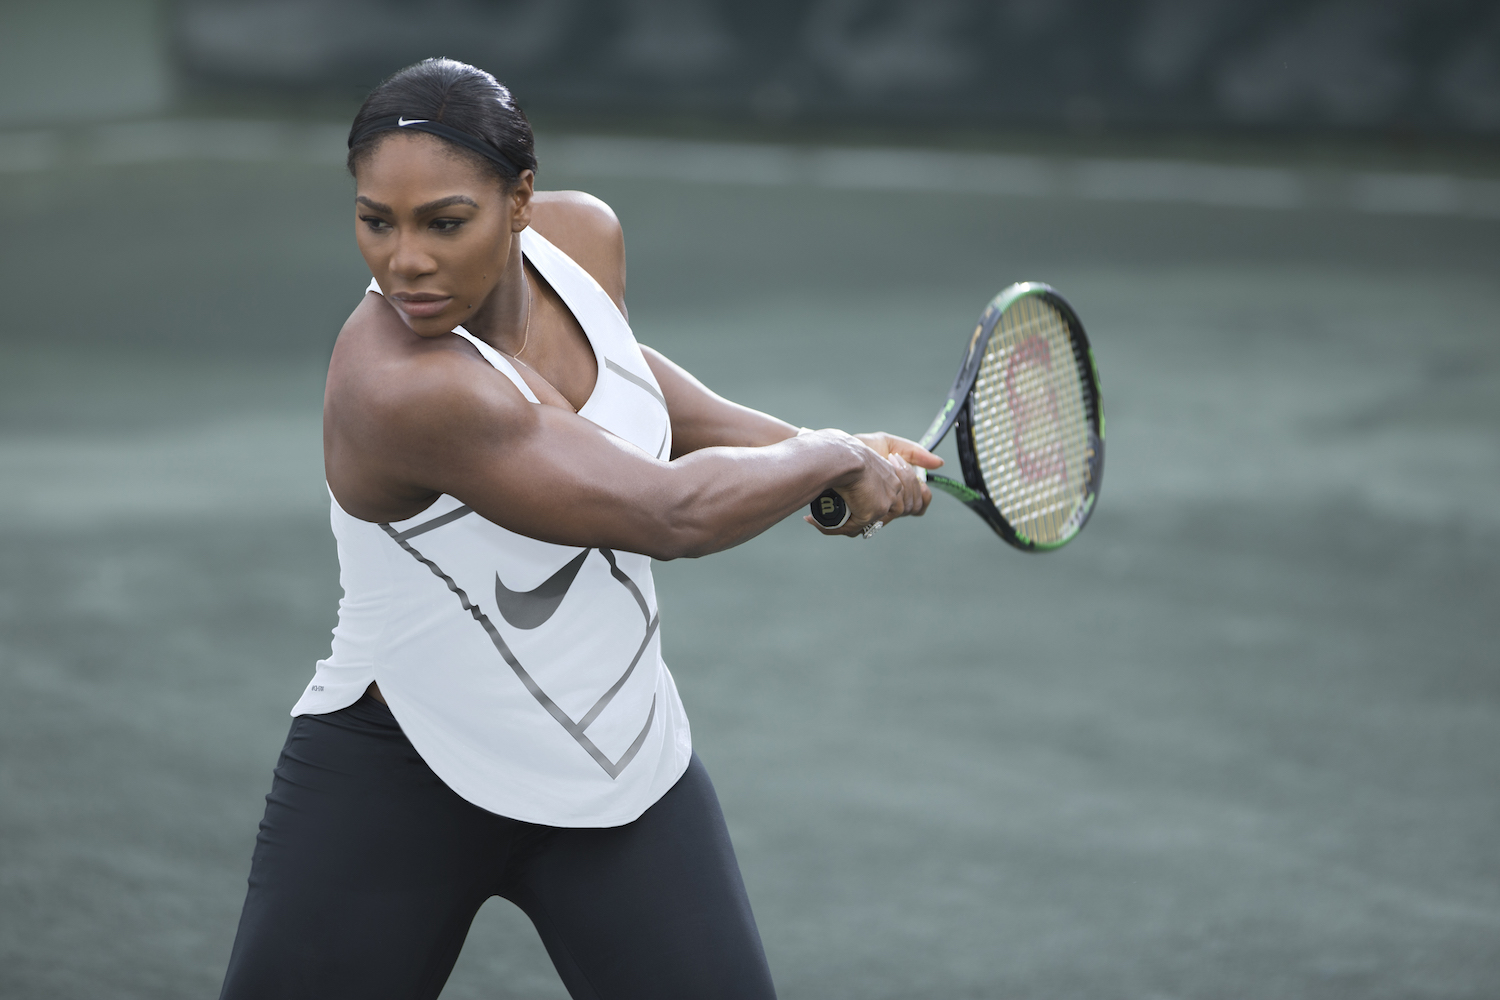 Serena Williams NikeCourt 1